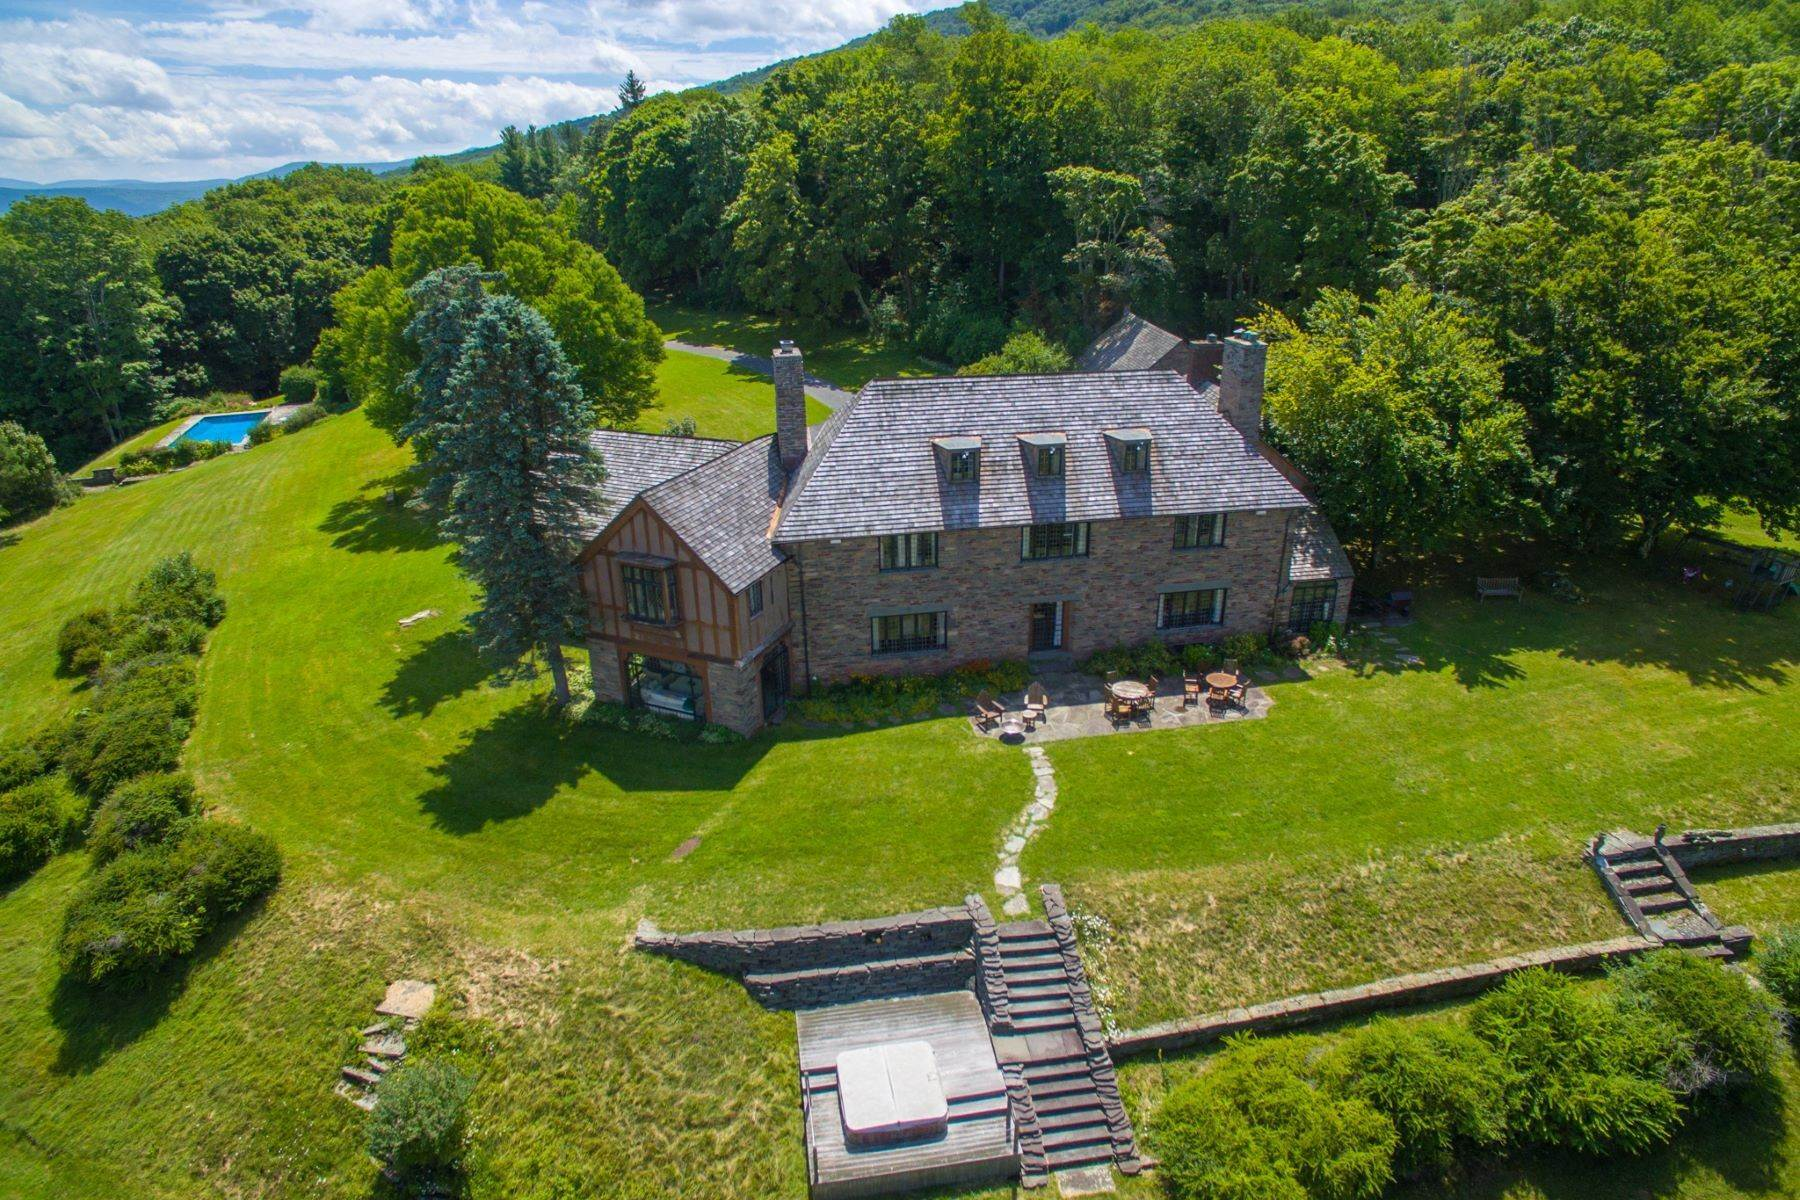 2. Single Family Homes for Sale at Sul Monte Mansion on Belleayre Mountain 352 Galli Curci Road, County Route 49A Highmount, New York 12441 United States